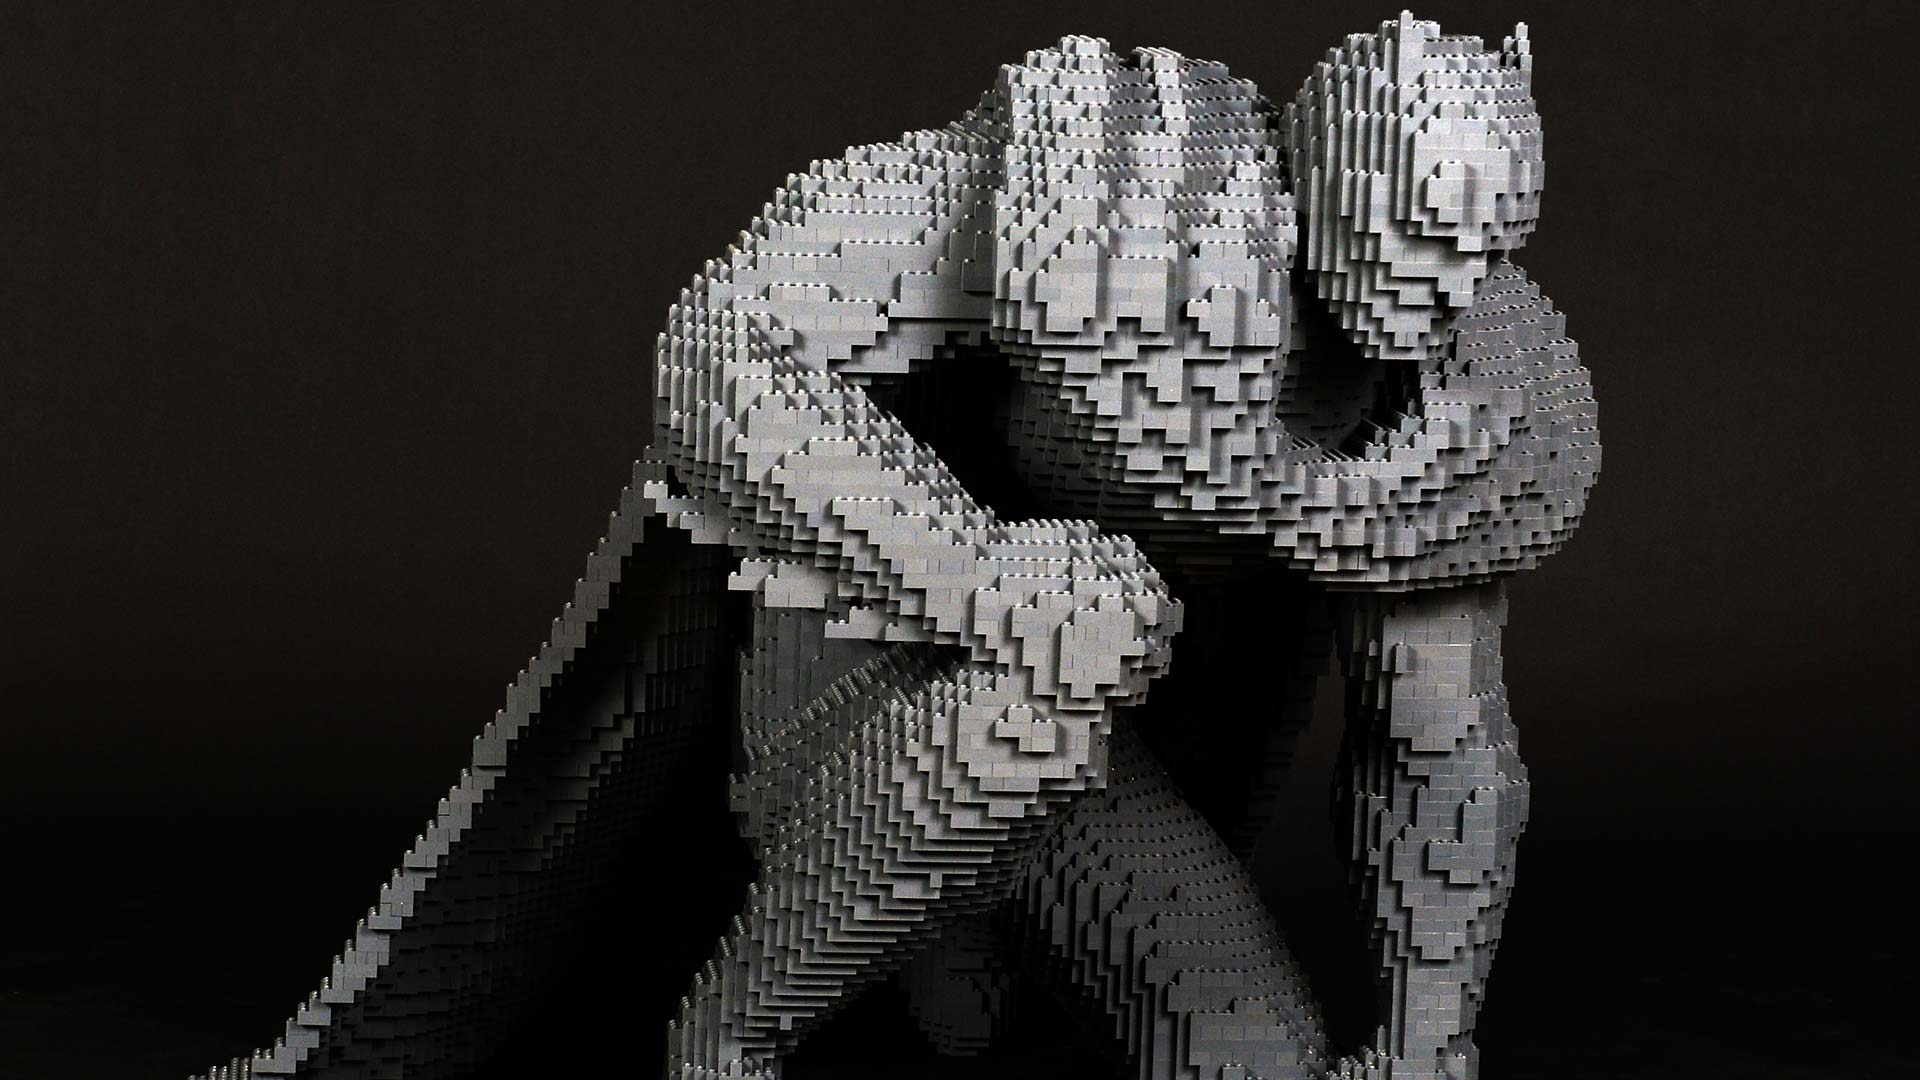 Announced at San Diego Comic-Con: The Art of the Brick: DC Comics | DC